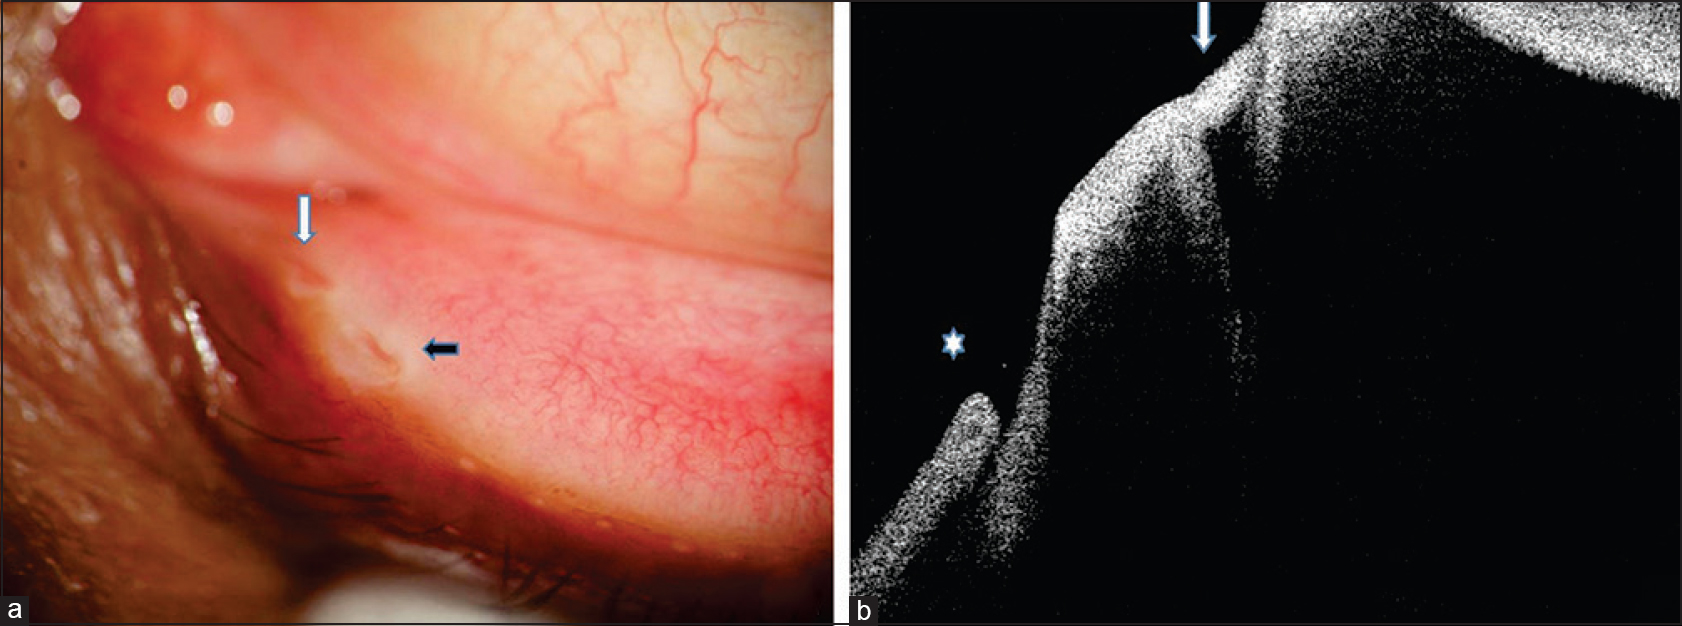 Figure 1: (a) Slit-lamp photography of supernumerary puncta of left eye lower lid, normal healthy puncta [black solid arrow], supernumerary puncta [solid white arrow]. (b) Cross-sectional image of both puncta obtained by AS-OCT, the deep funnel shaped hyporeflective spaces [solid white arrow] is normal healthy puncta. The hyperreflective epithelium of lid margin is continuous in both wall but abruptly thinned out at the margin of opening at temporal wall though nasal wall epithelium maintain its thickness throughout whole vertical depth. The shallow creeping edged tissue gap buried in the lid margin defines supernumerary puncta [asterix]. Here, lid margin epithelium is discontinuous in both the wall